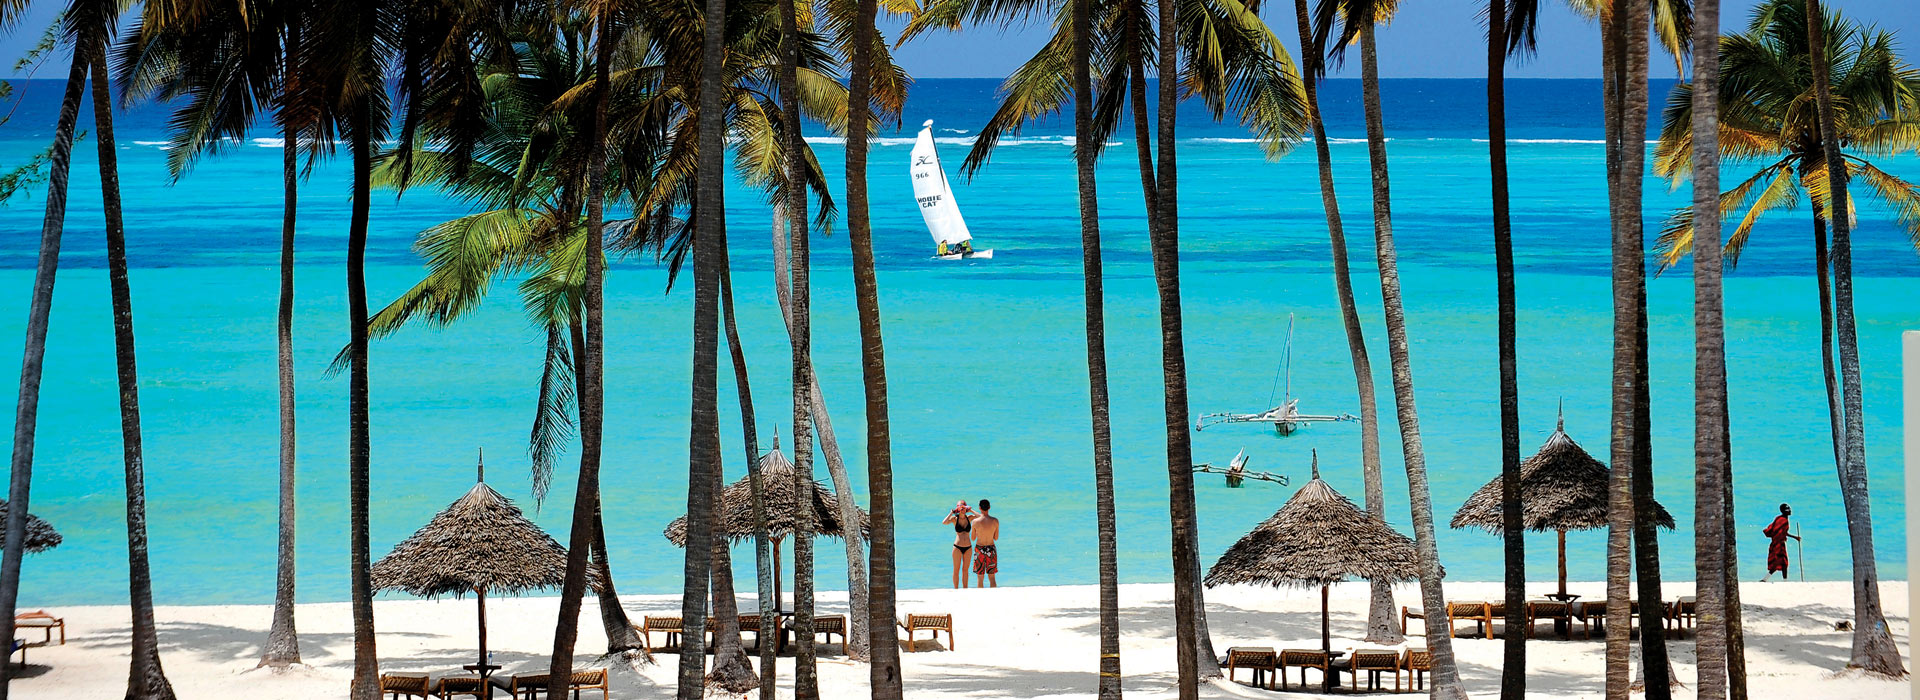 zanzibar-best-things-to-do